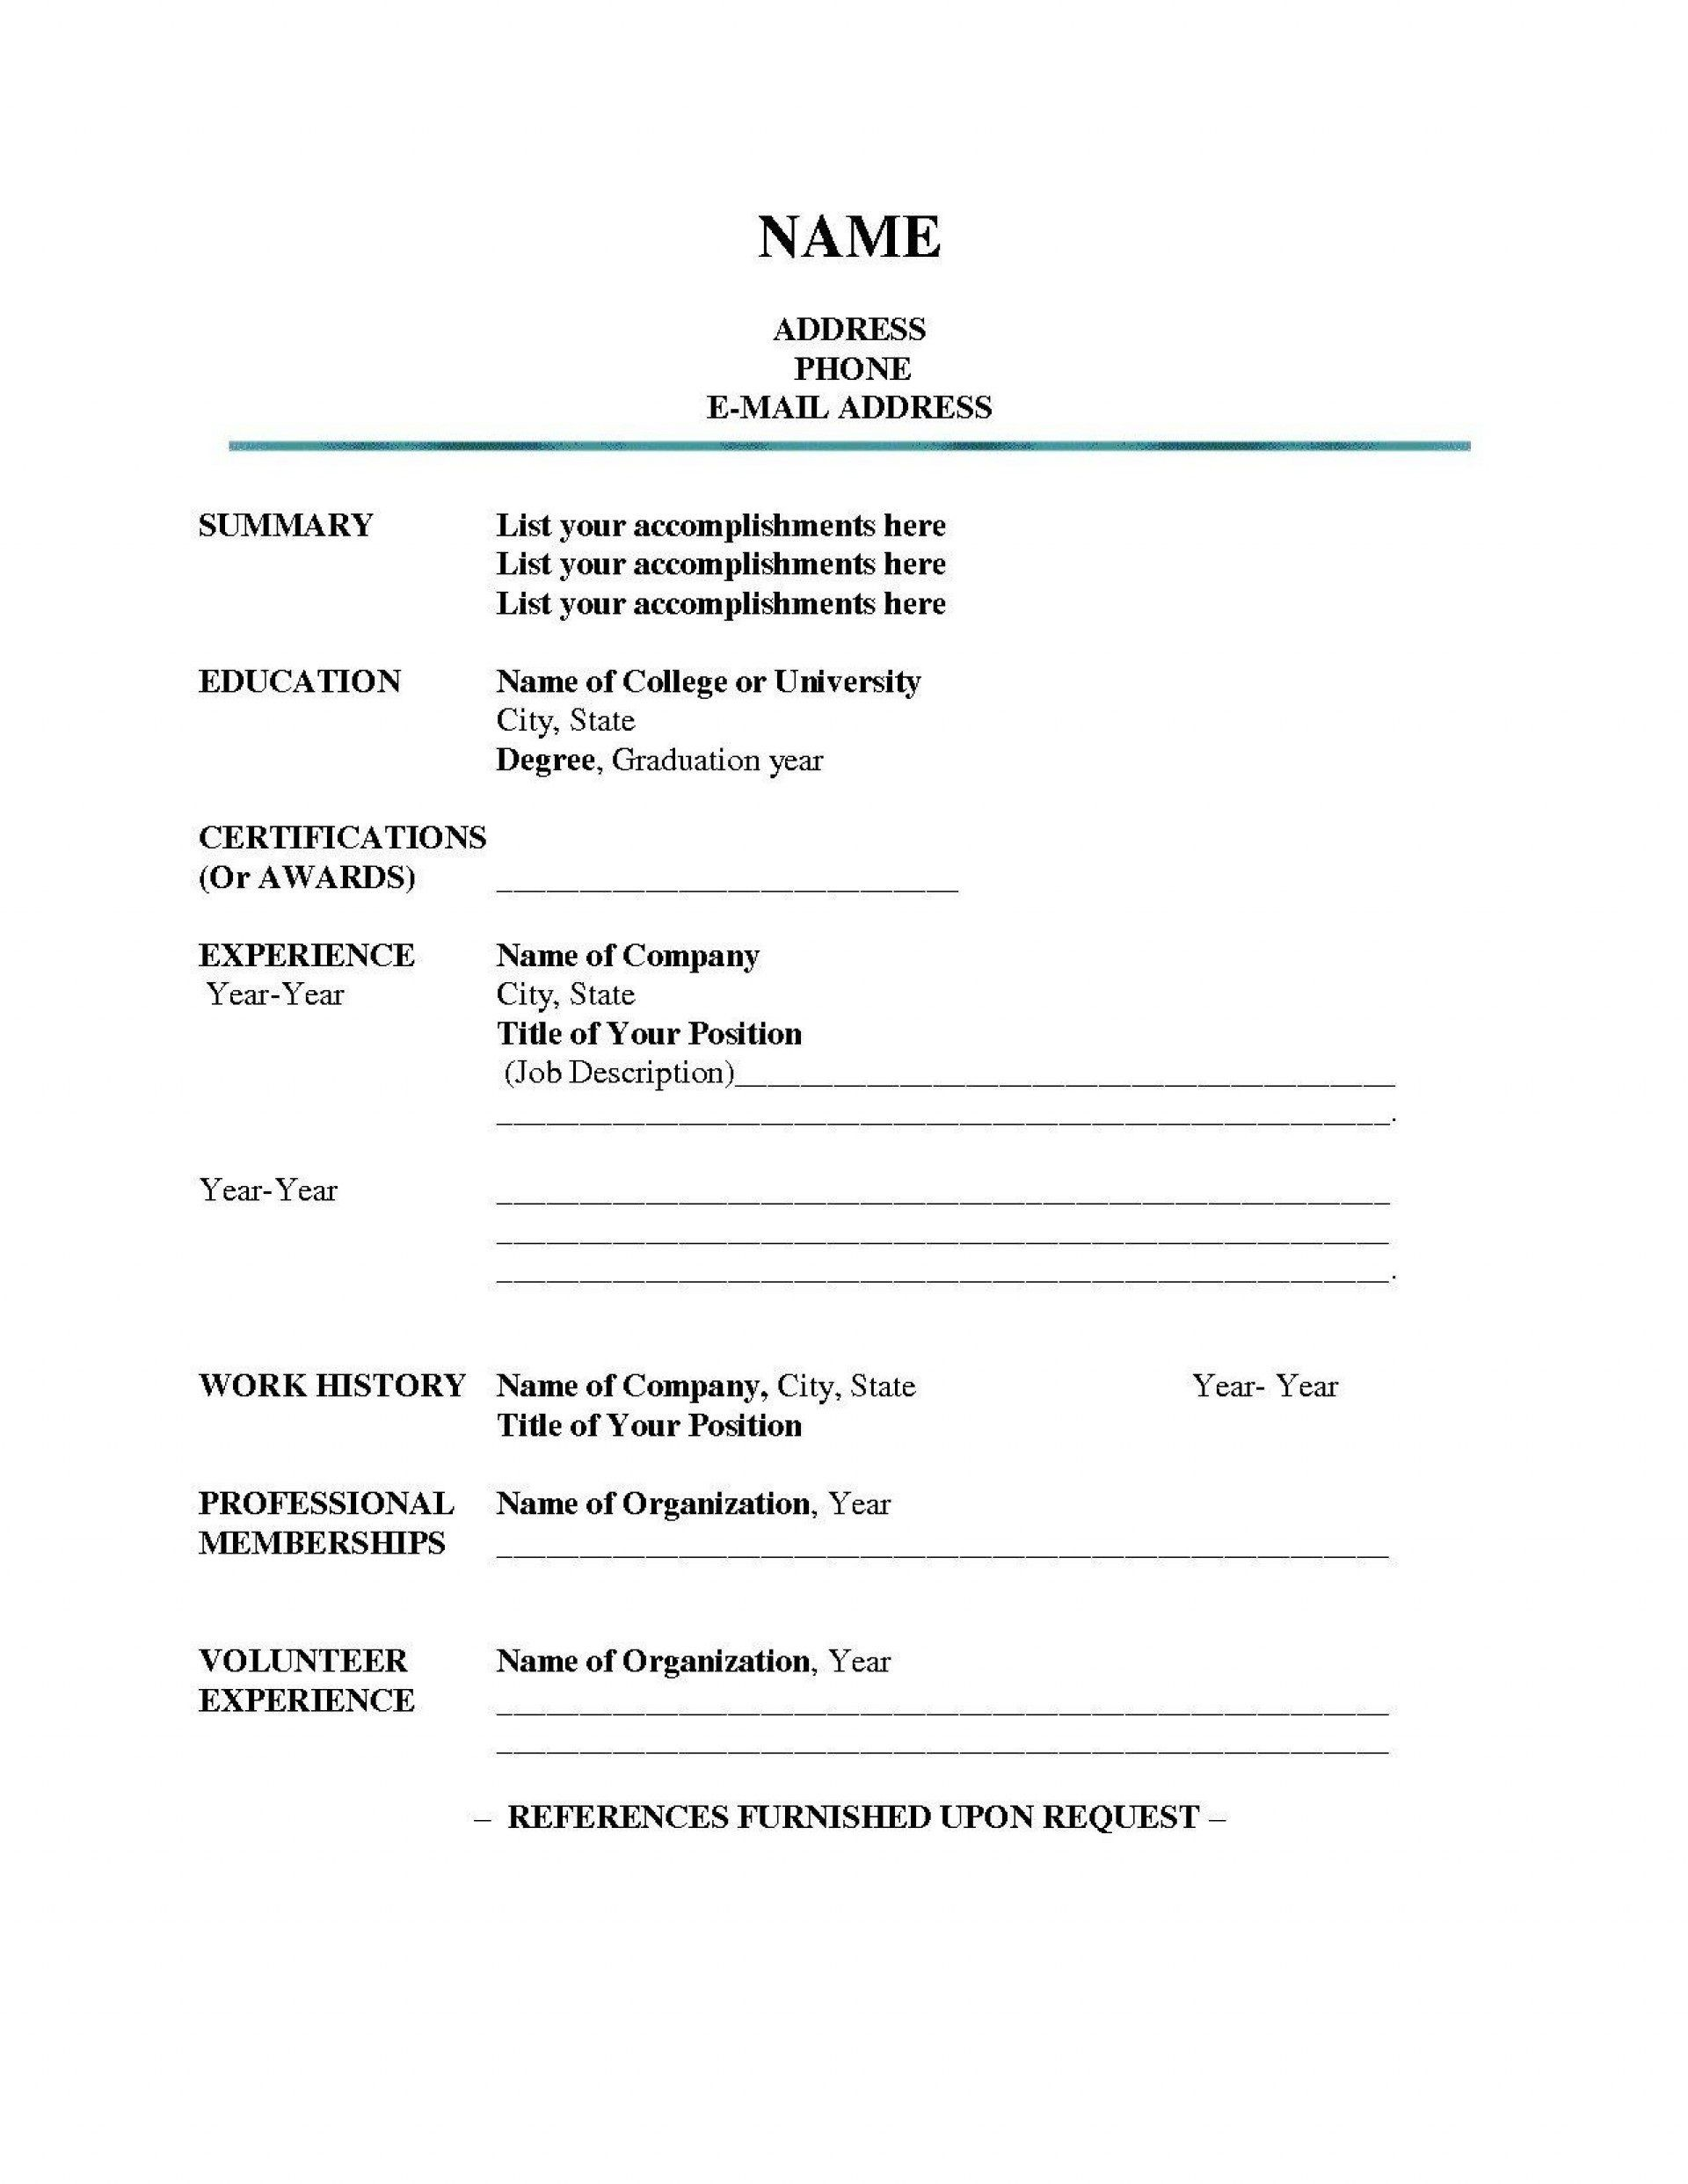 006 Stupendou Resume Reference List Template Microsoft Word Example 1920